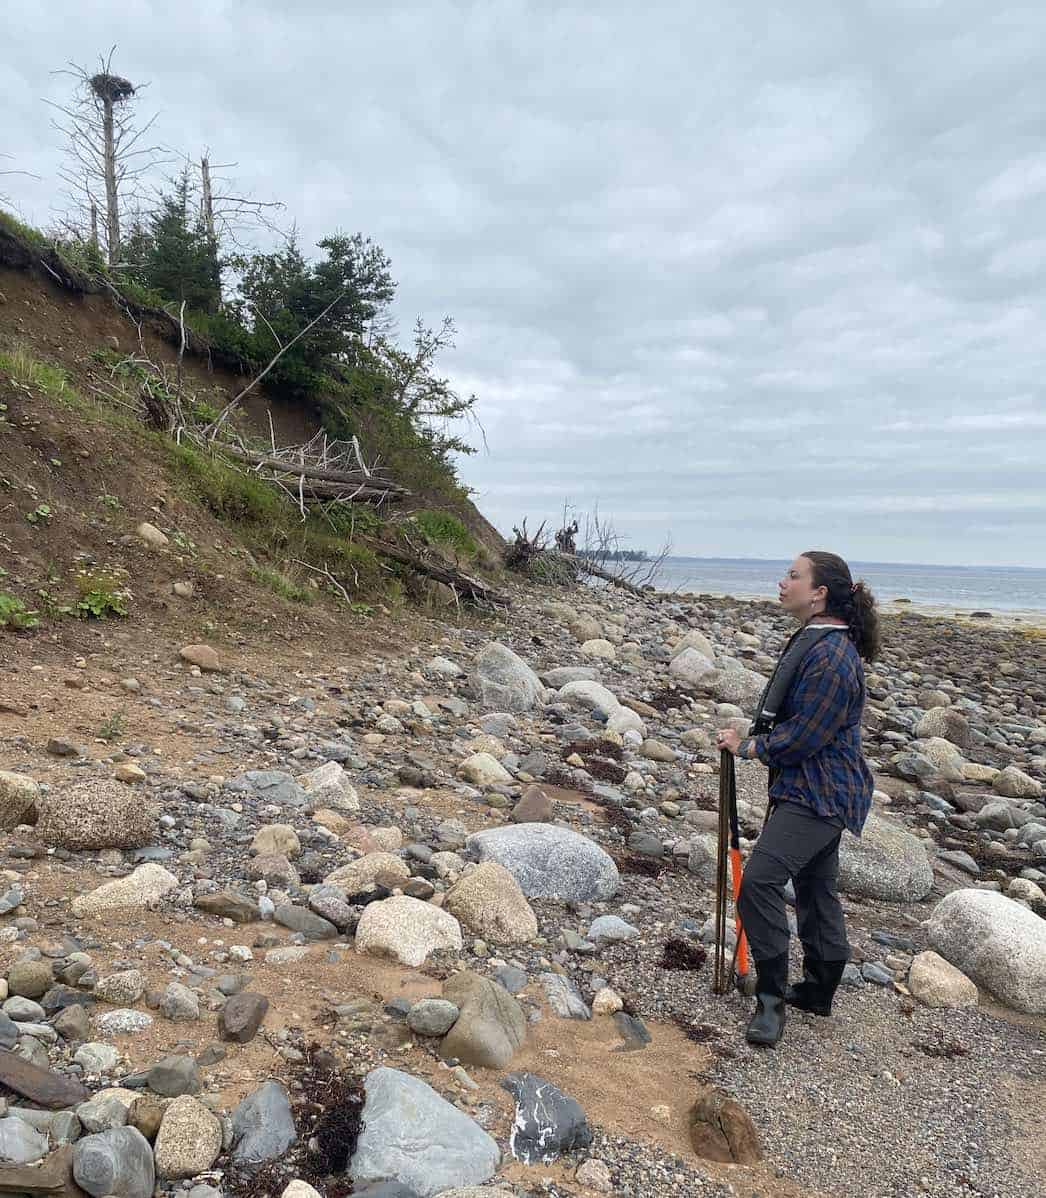 Student Natalie surveying the coast of an island for locations to sample